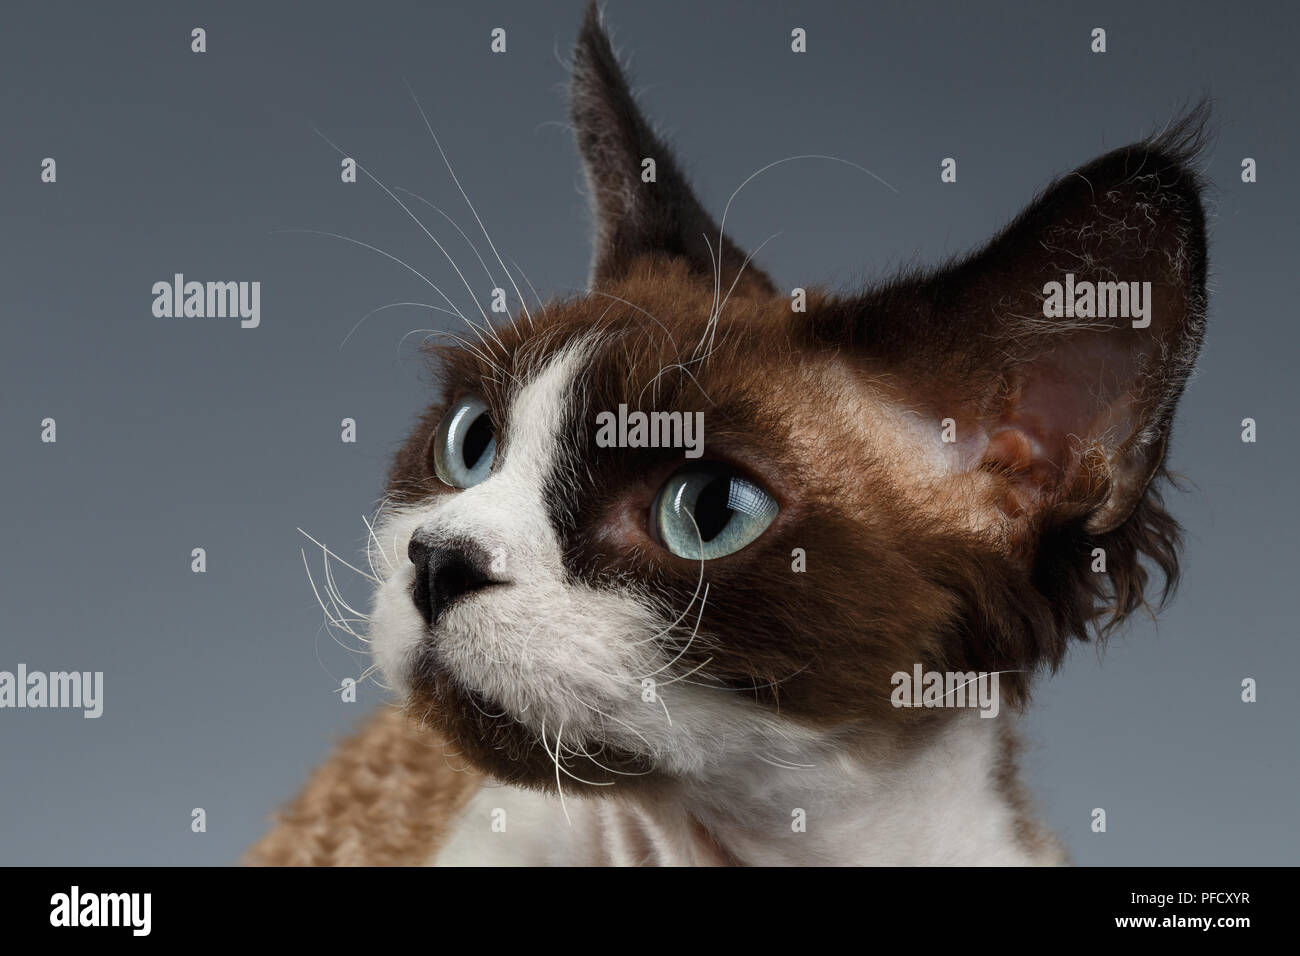 Closeup Portrait of Devon Rex Looking at left on Gray background - Stock Image